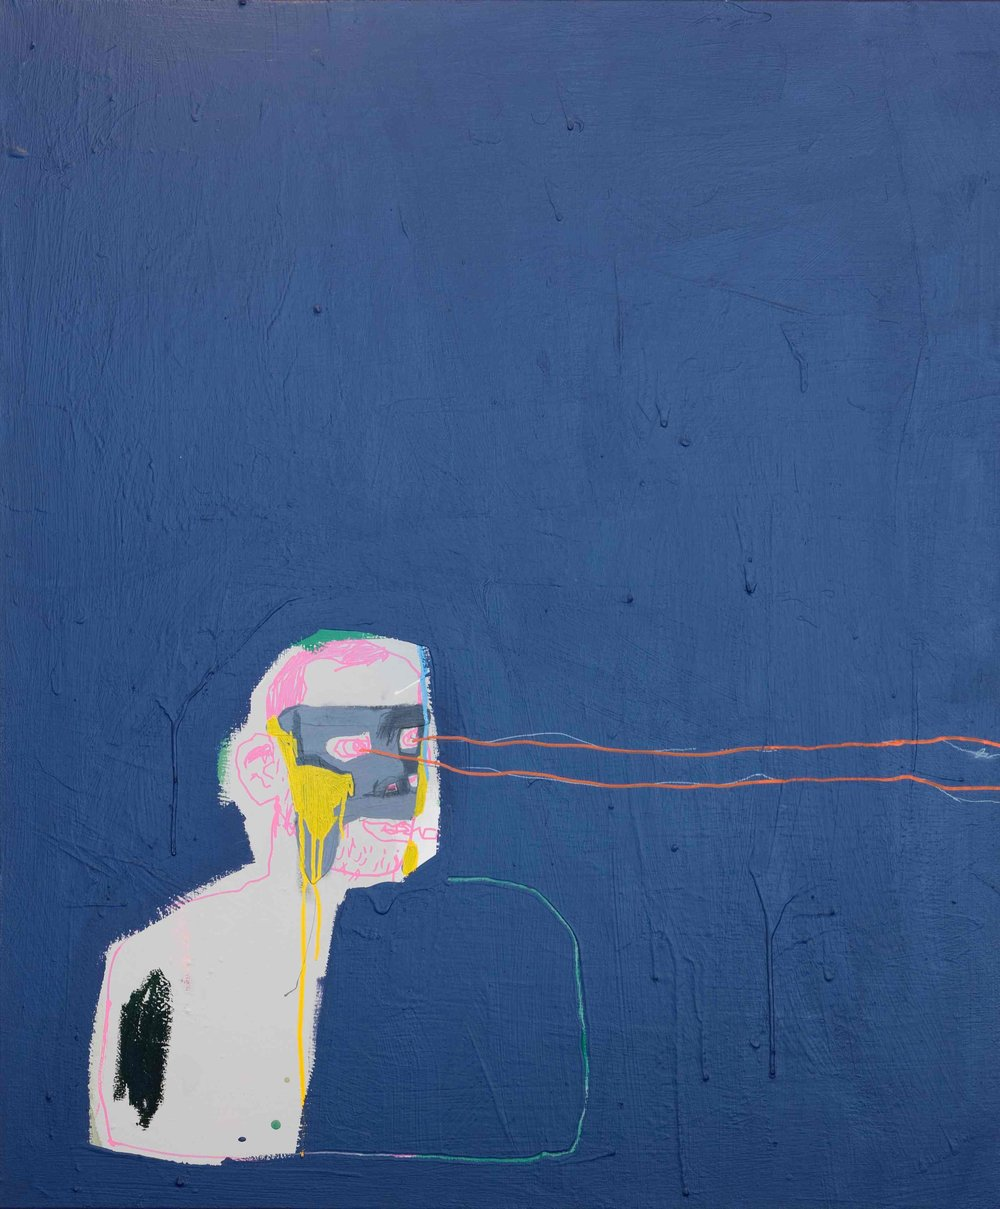 Iron Mask , 2013, acrylic, oil, ink and pencil on canvas, 100cm x 120cm